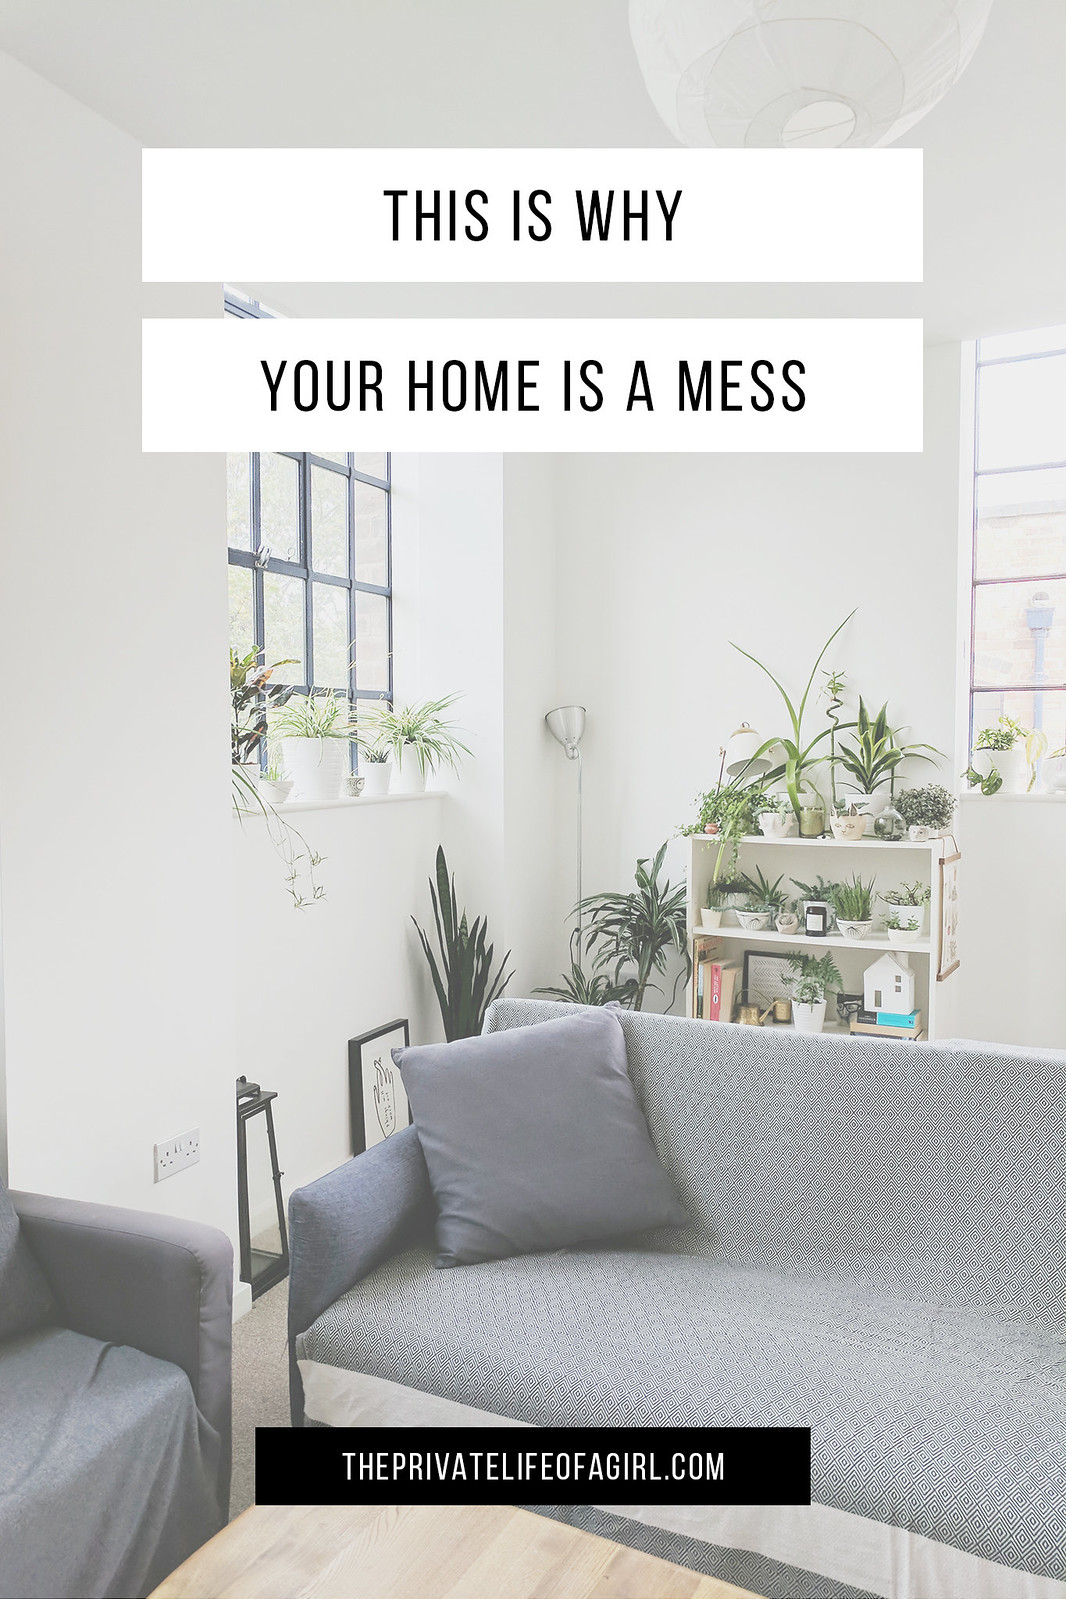 This Is Why Your Home Is A Mess